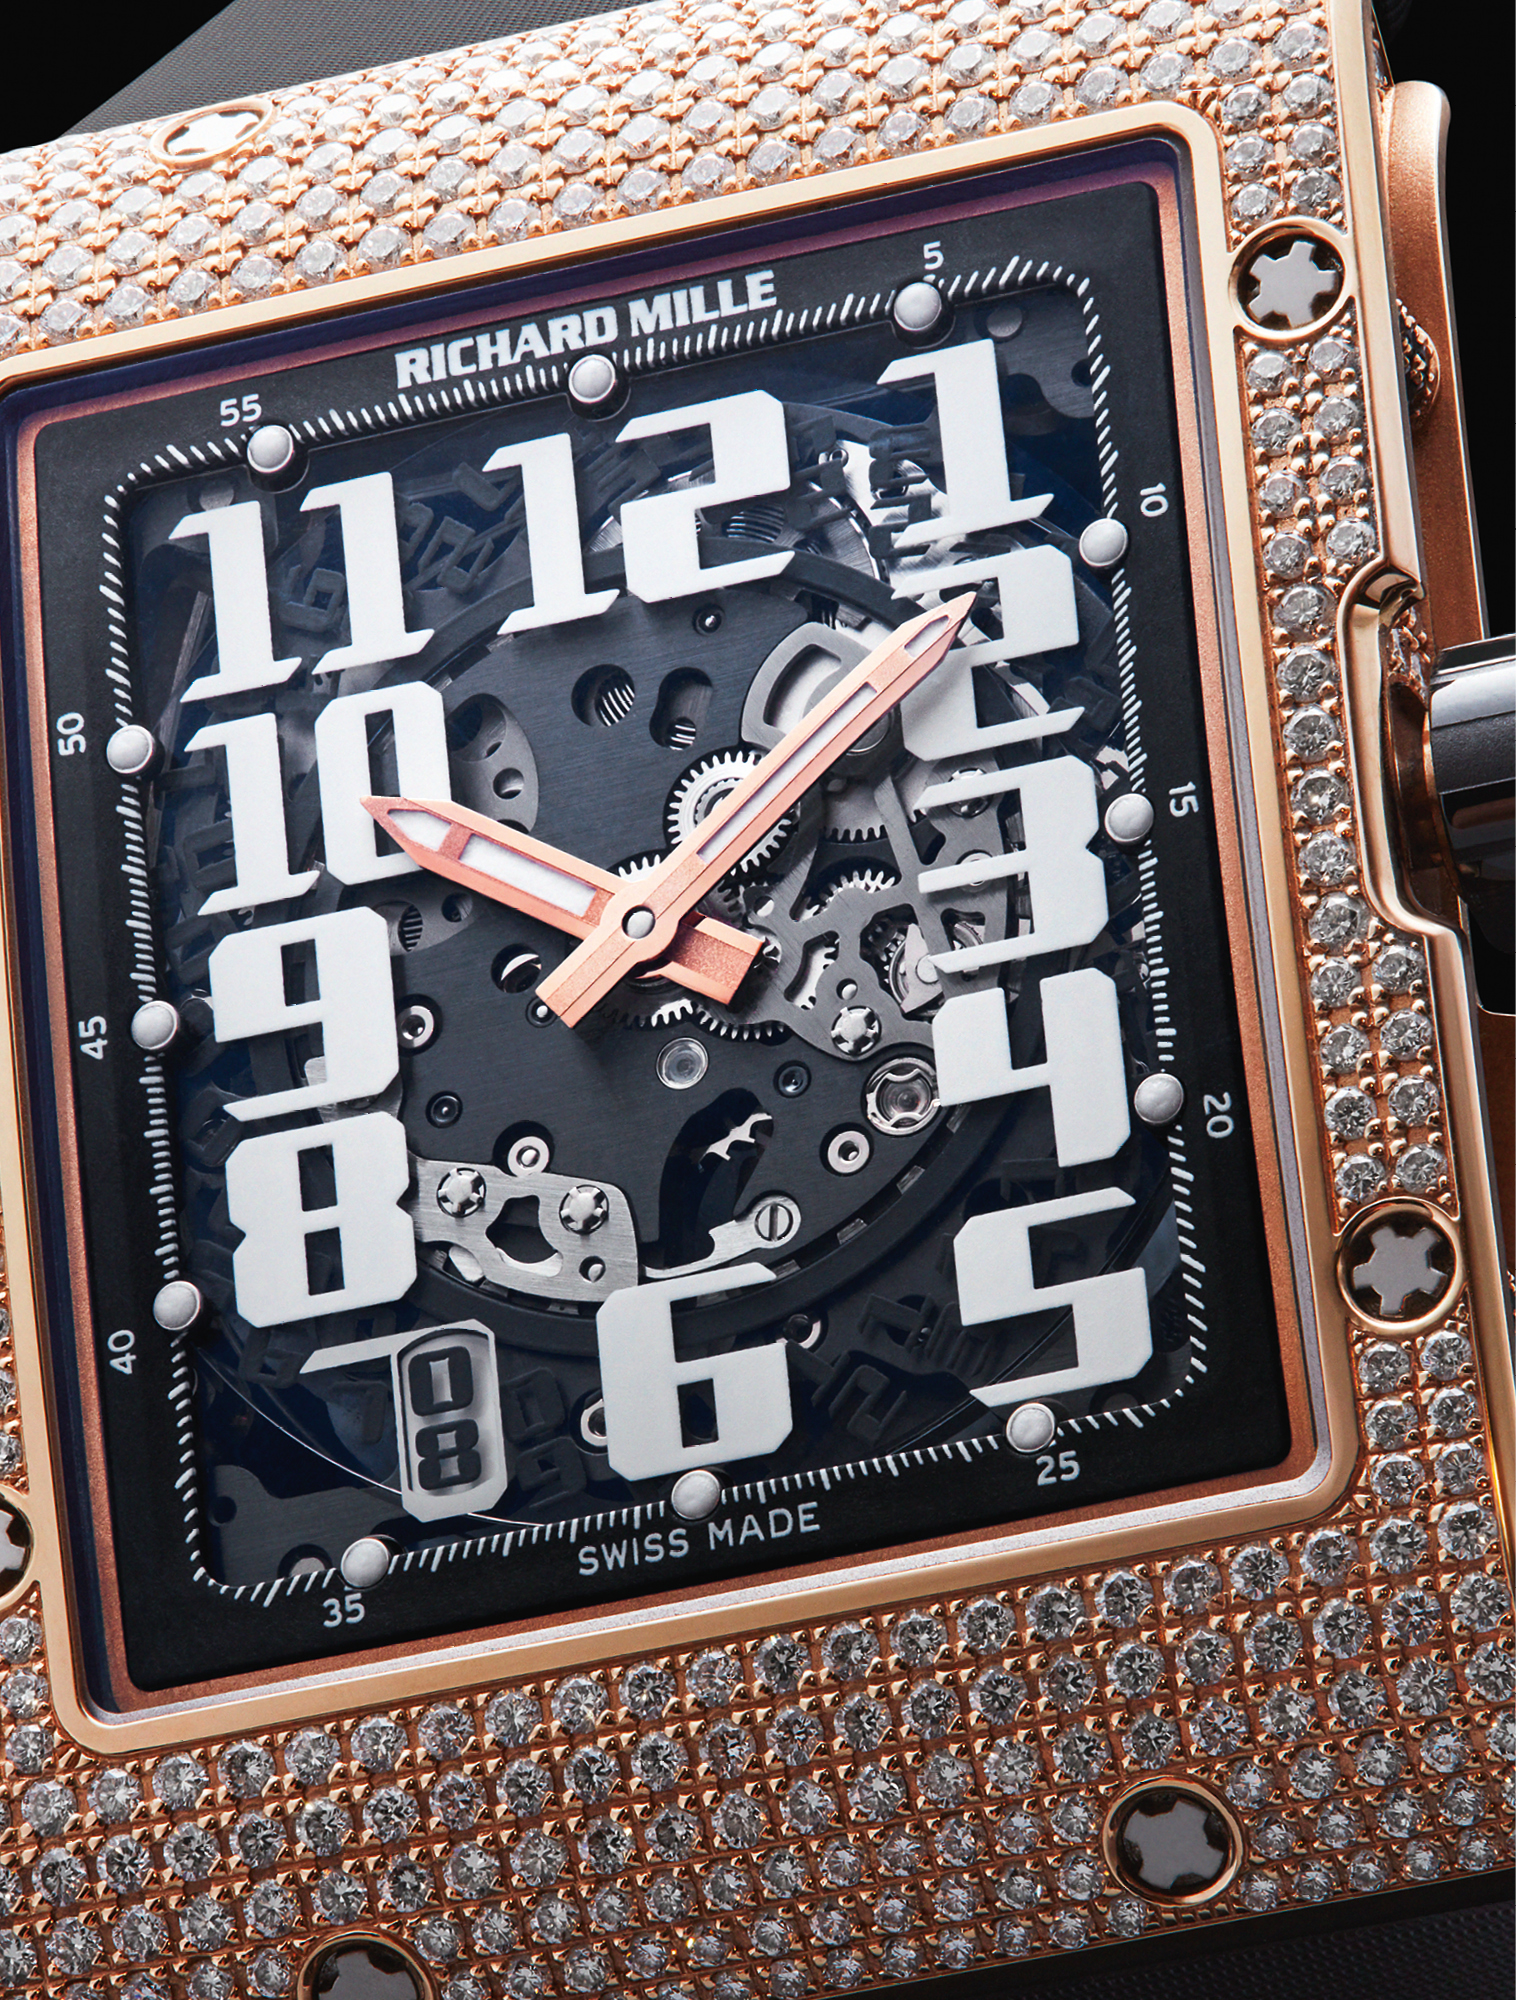 The Richard Mille RM016 Automatic Winding Extra Flat 18ct Red Gold model with diamonds allows the rewinding of the mainspring to be adapted most effectively to the user's activity levels. £171,000, RICHARD MILLE